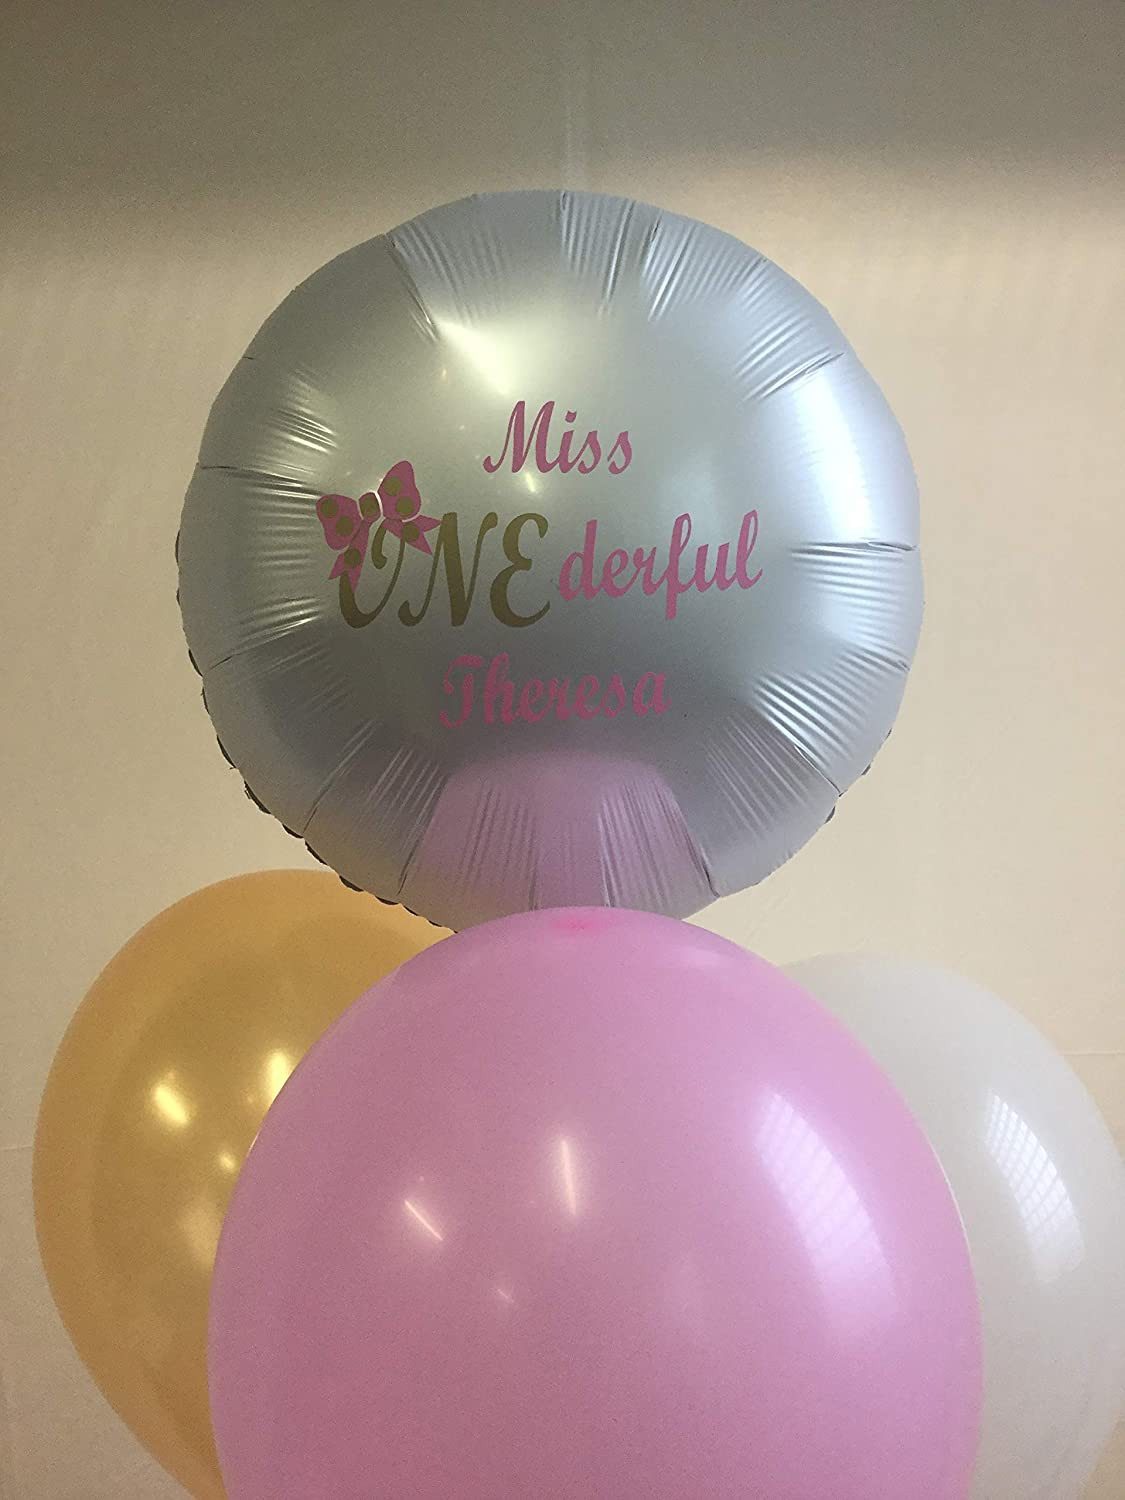 Miss Onederful Decorations Miss Onederful Balloon Custom Decorations 1st Birthday Decorations,Miss Decorations First Birthday Onederful Onederful Personalized Balloons